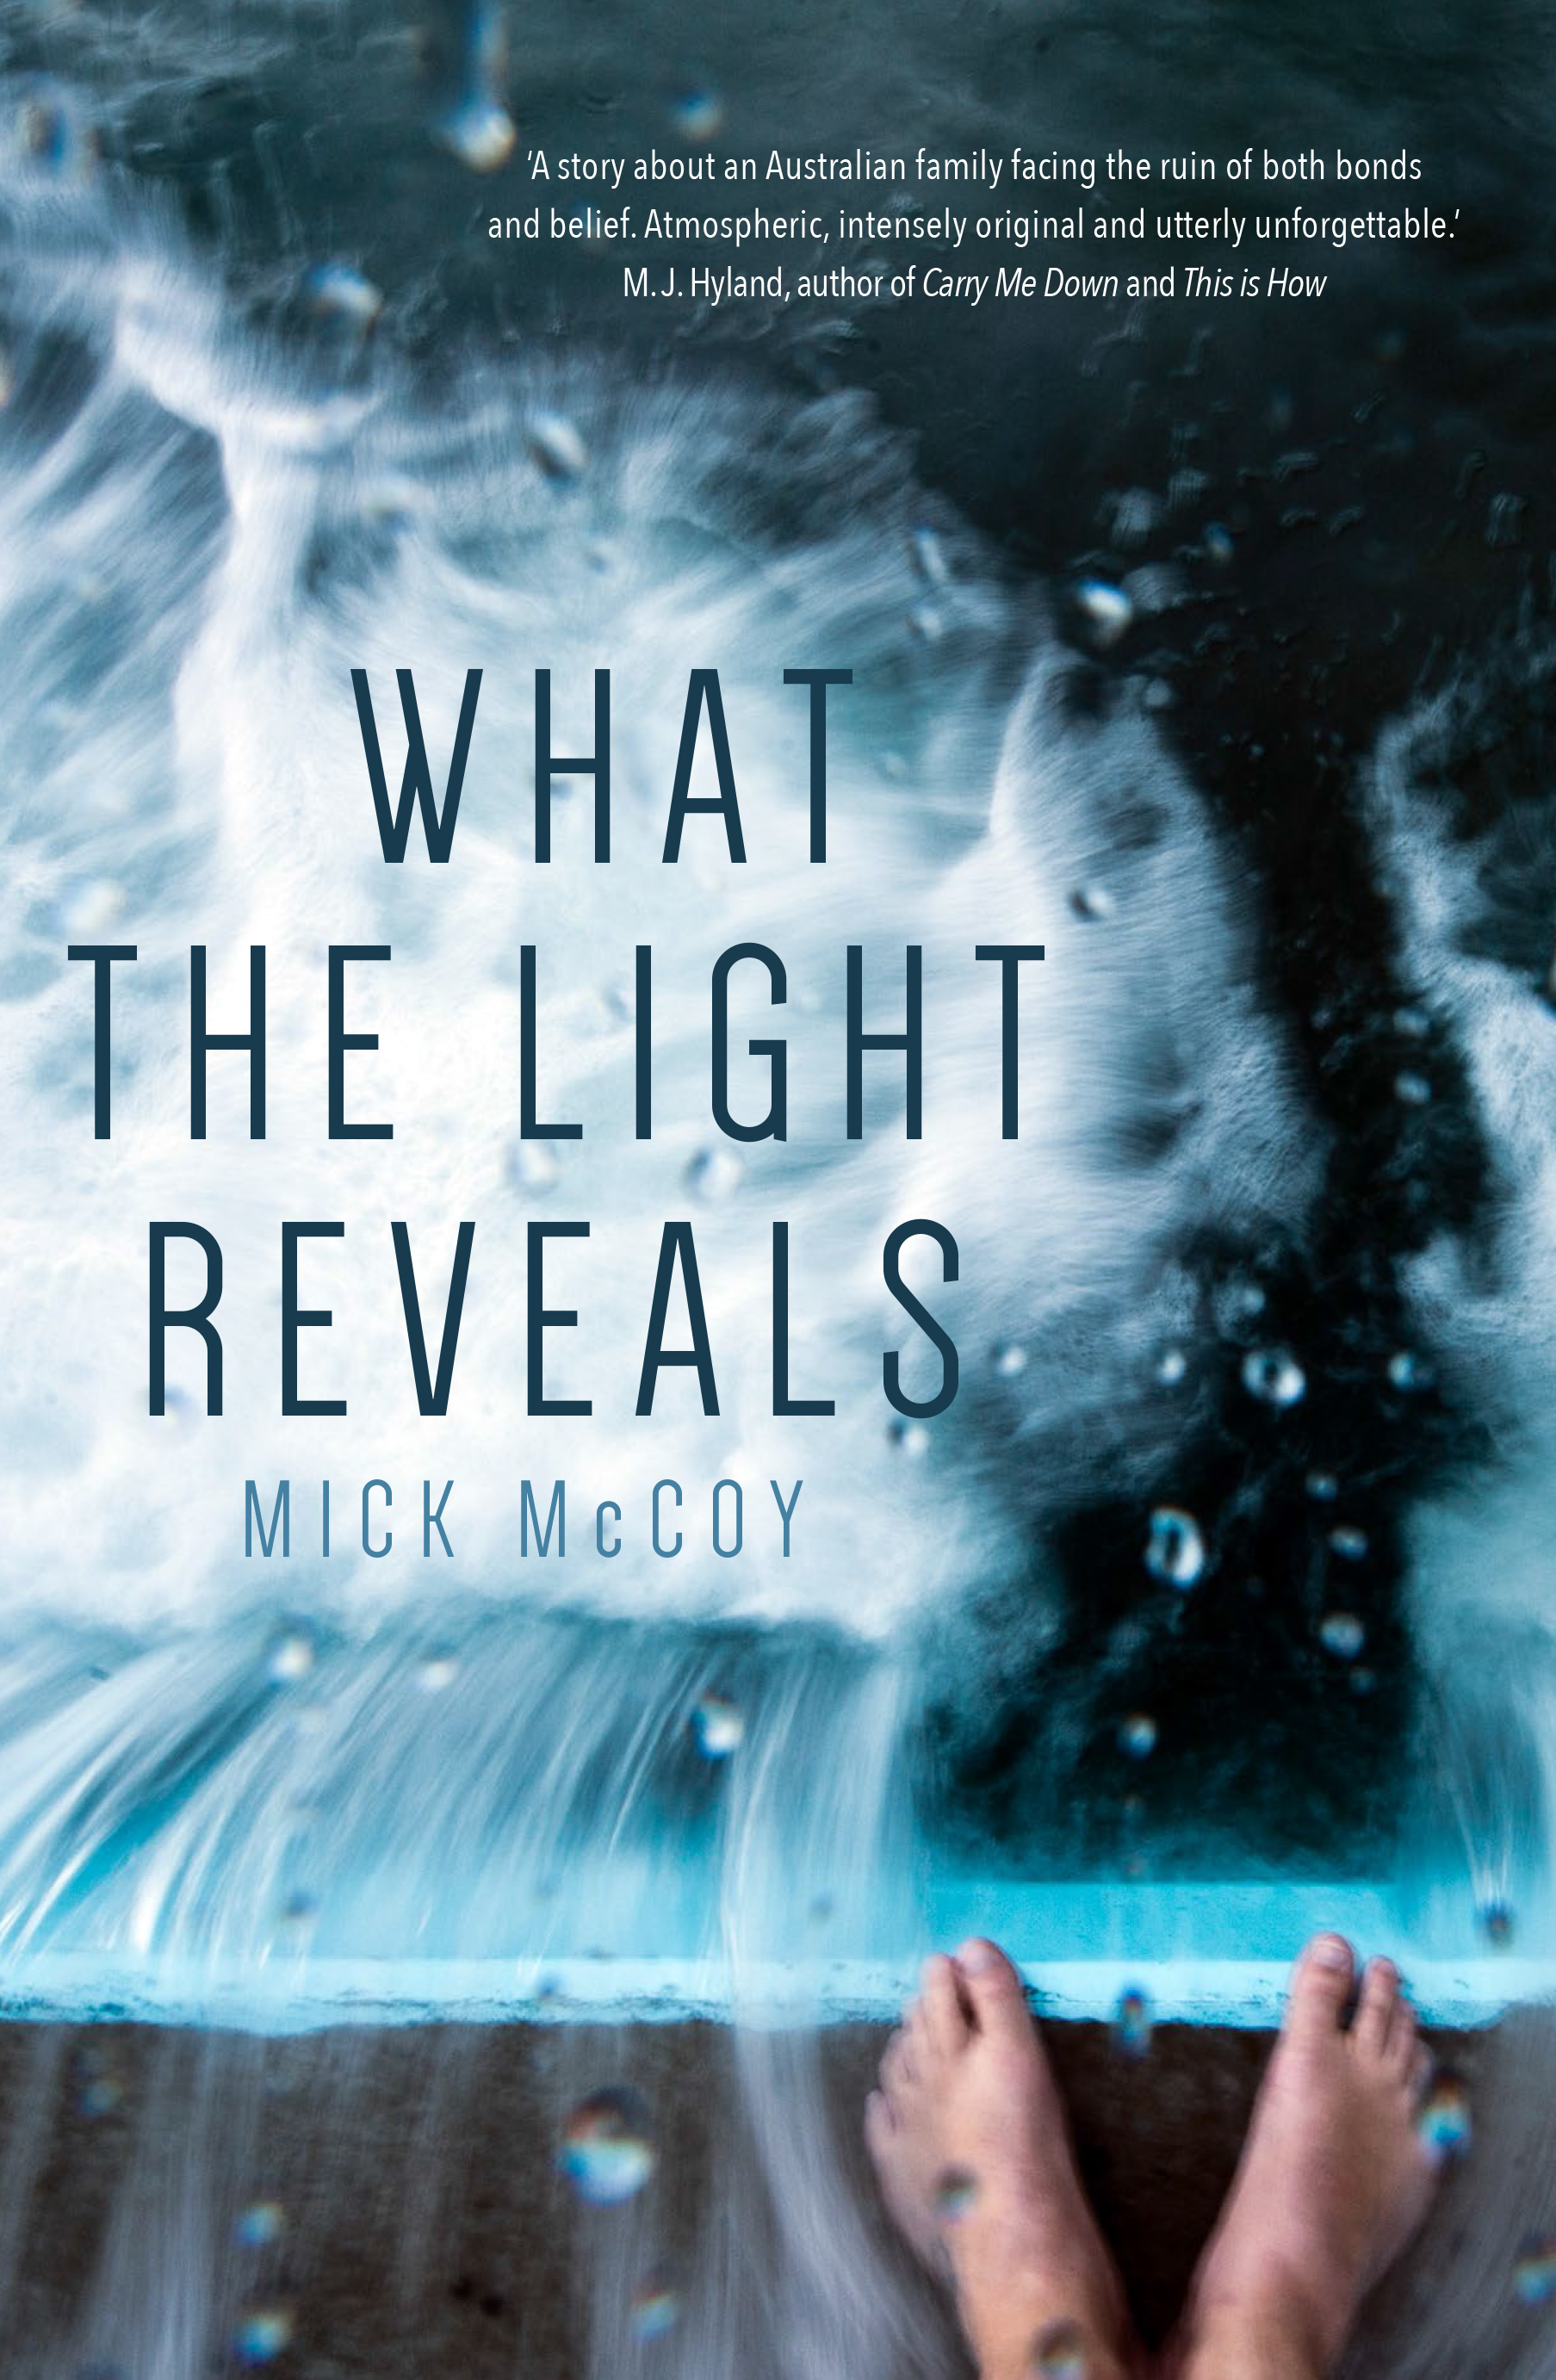 Launch of What the Light Reveals